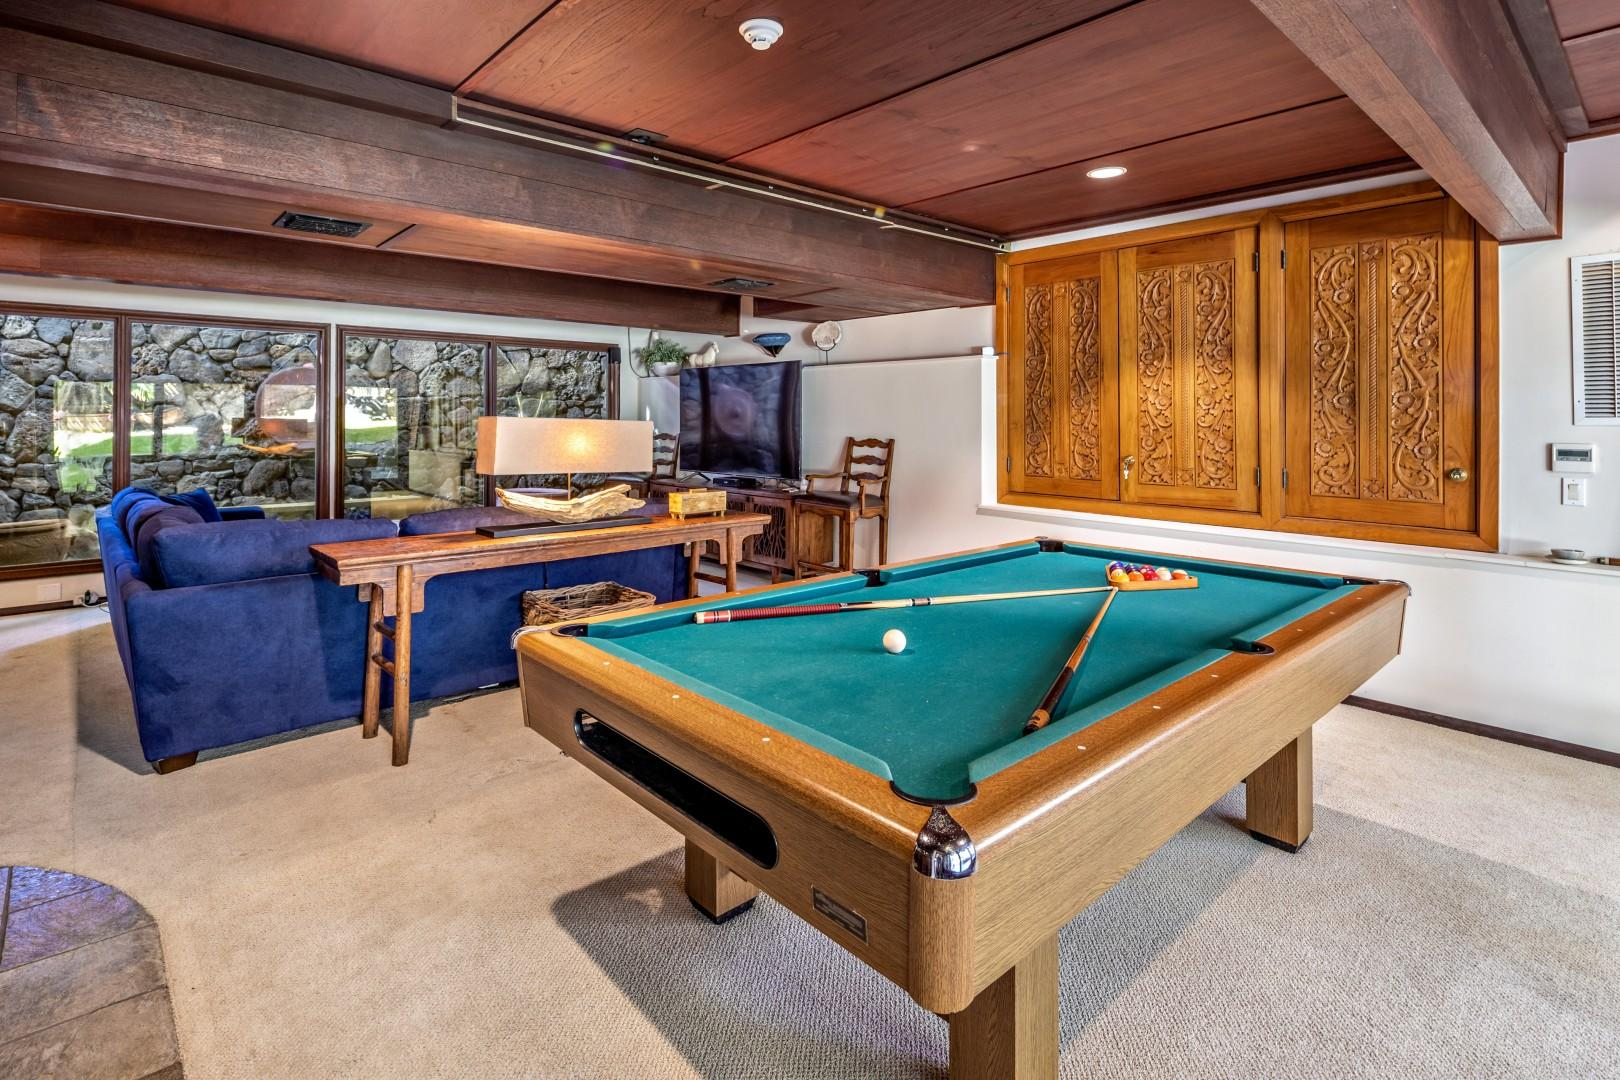 TV and pool room